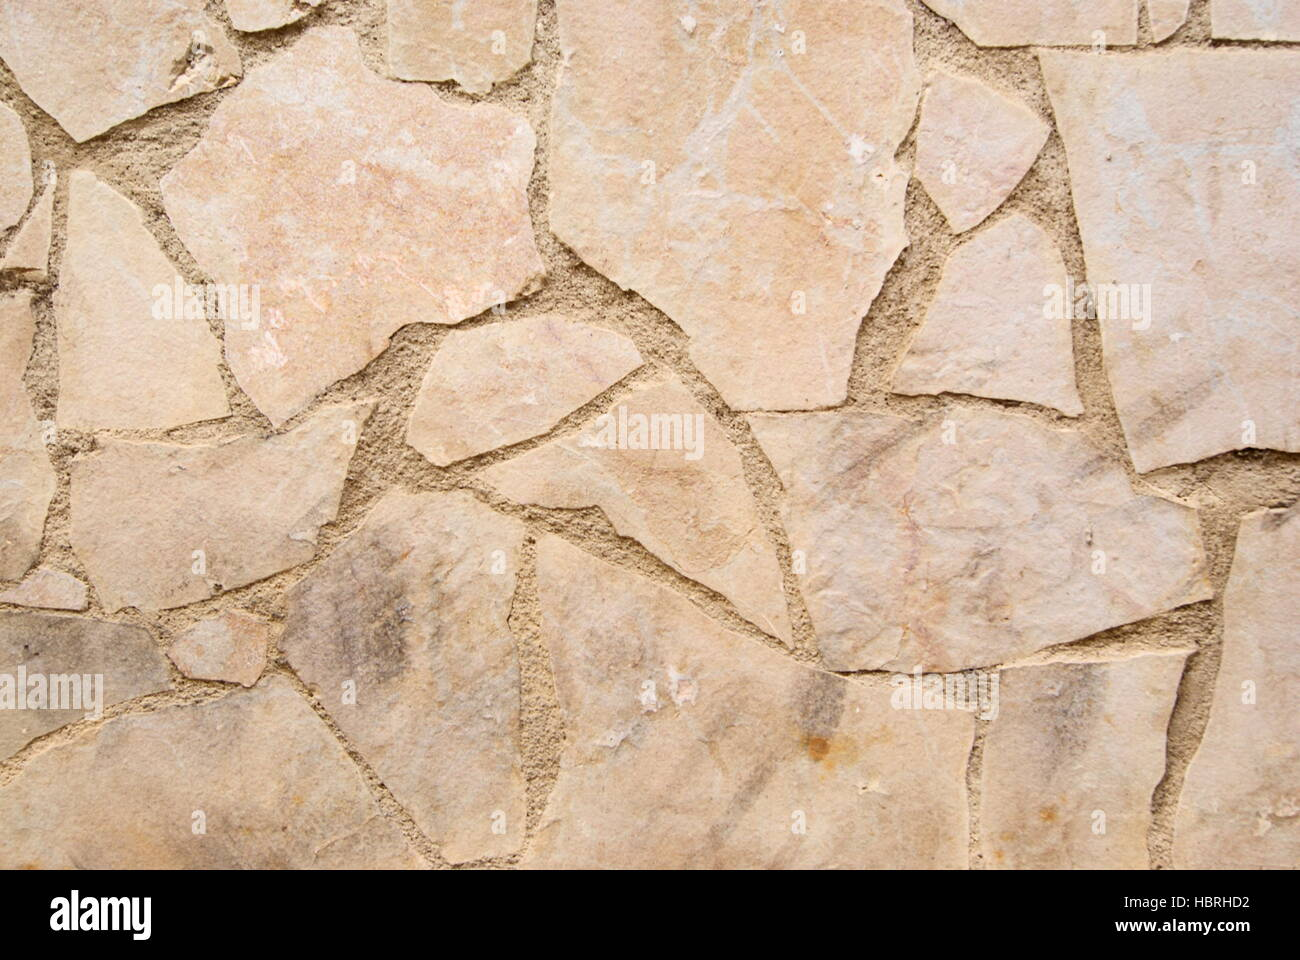 Rustic Stone Background Stock Photo 127752382